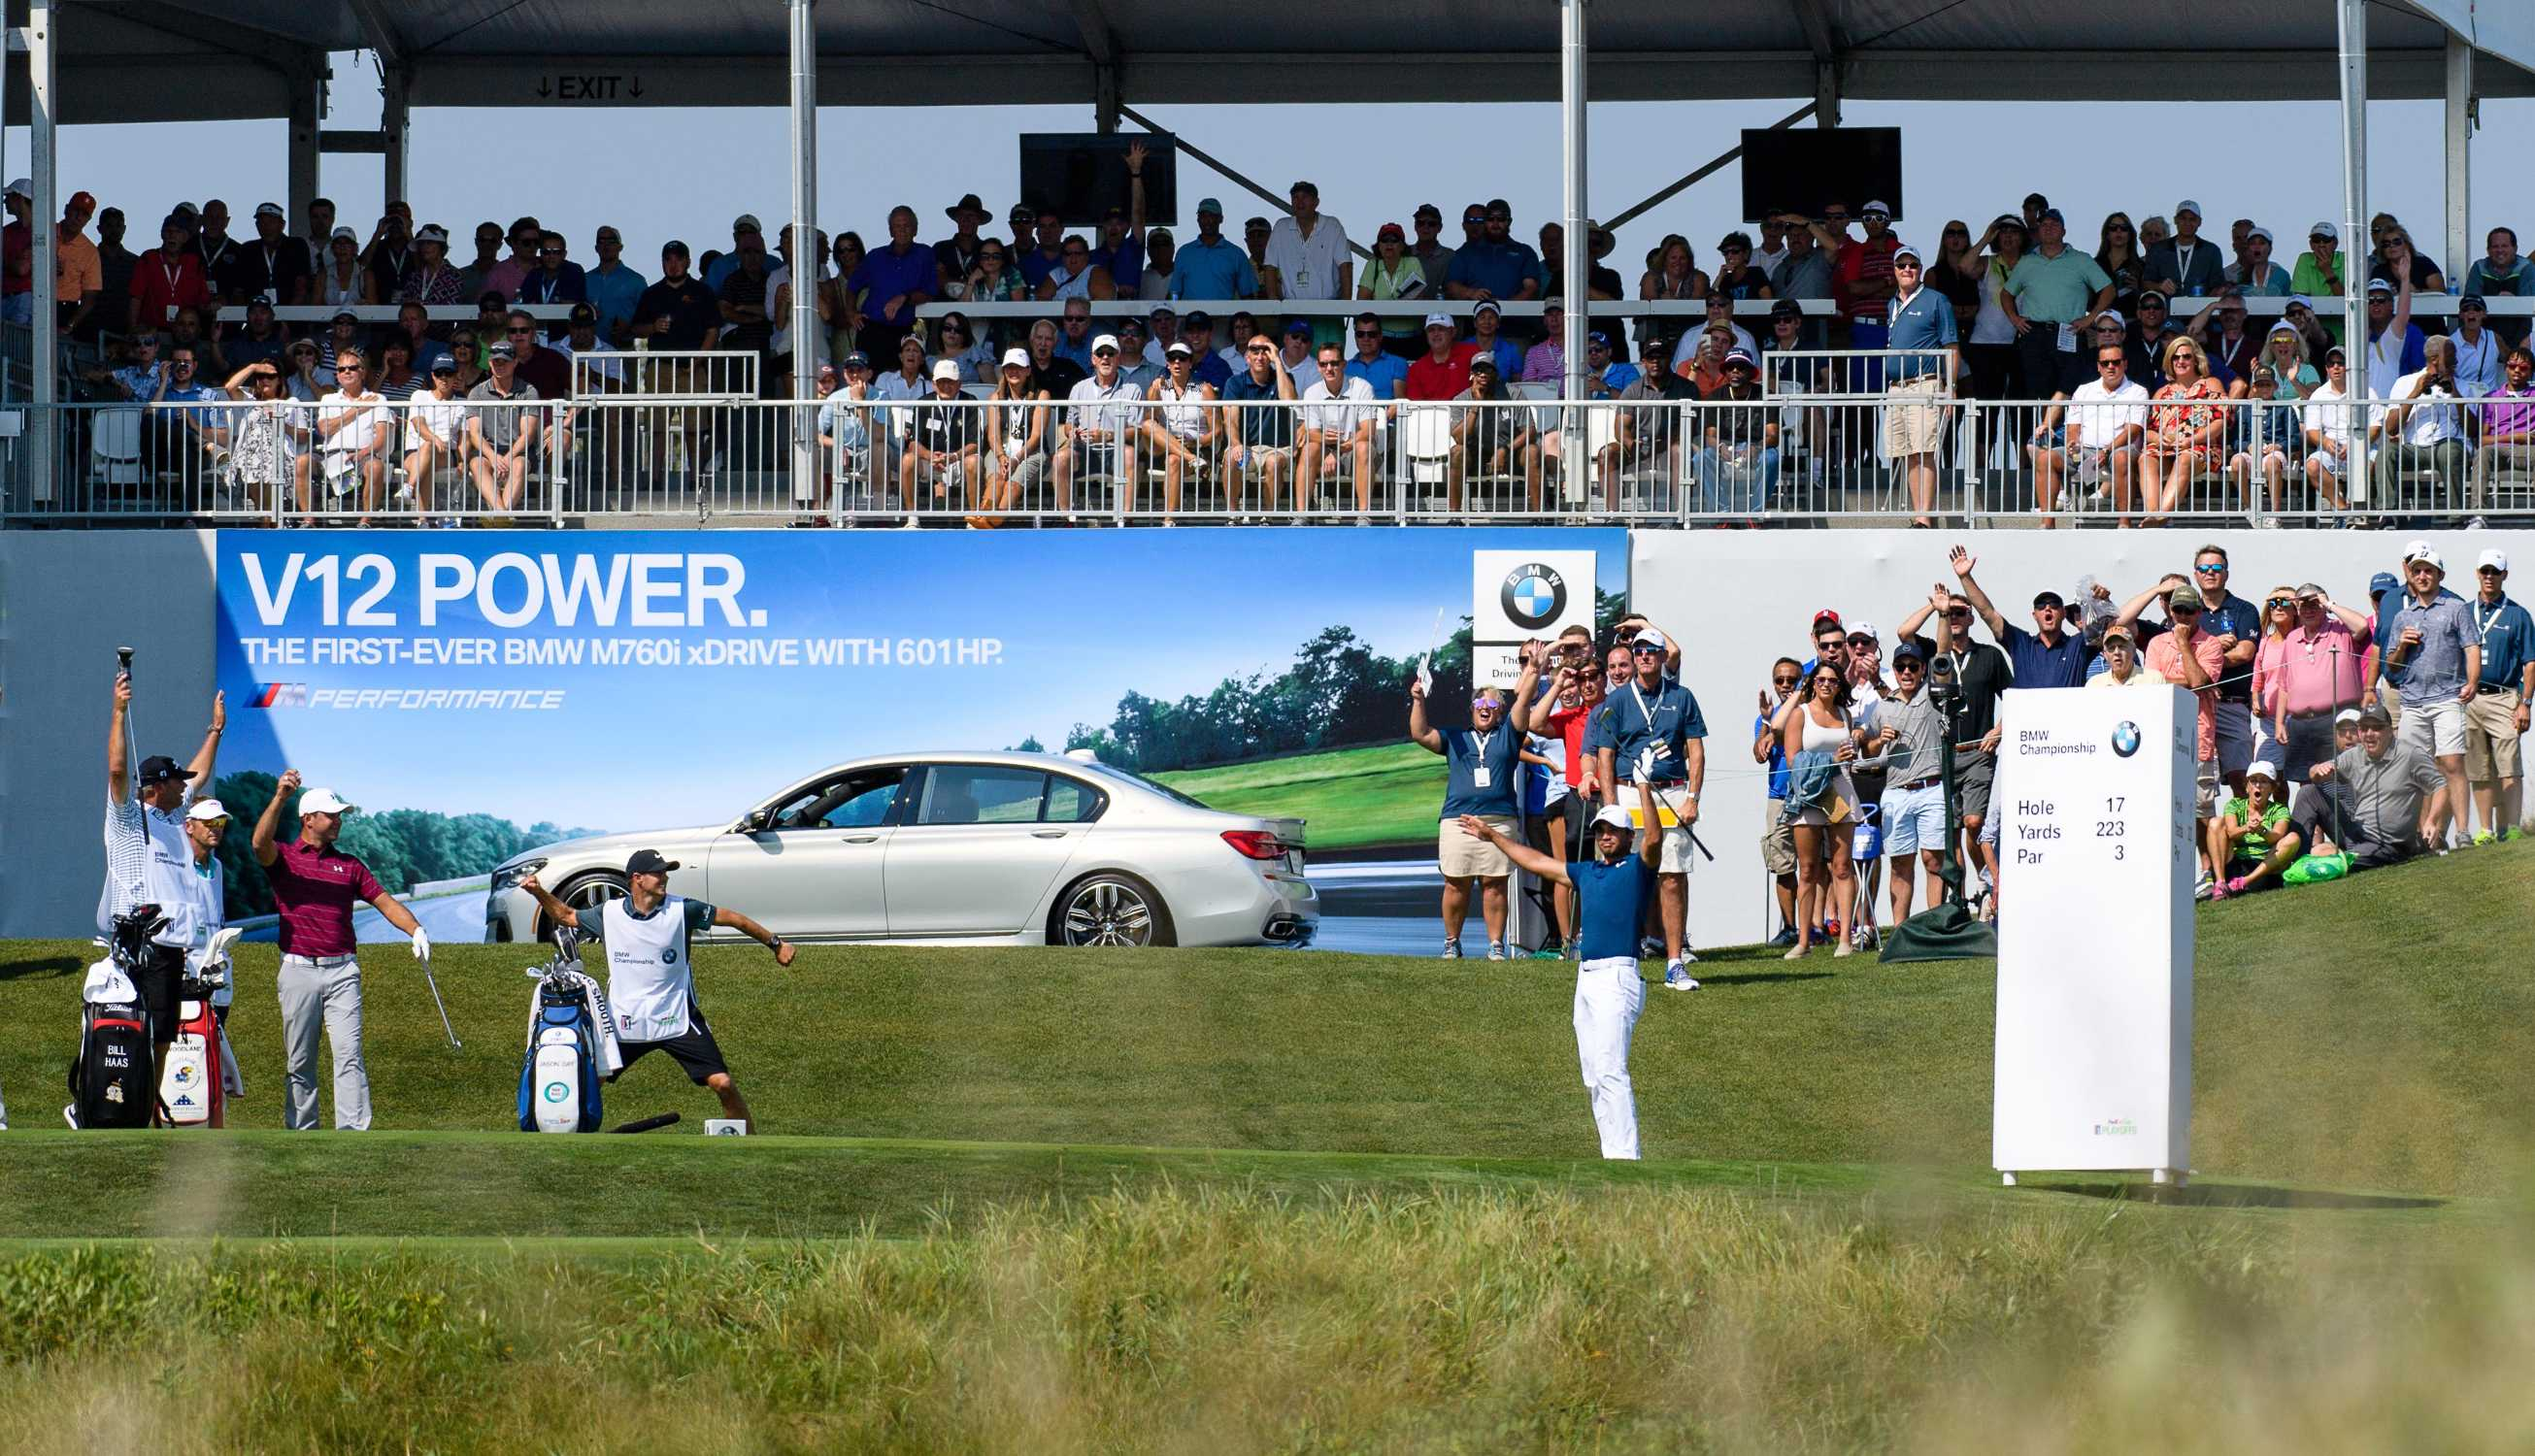 perfect day! australian jason day hits an ace to win a bmw m760i